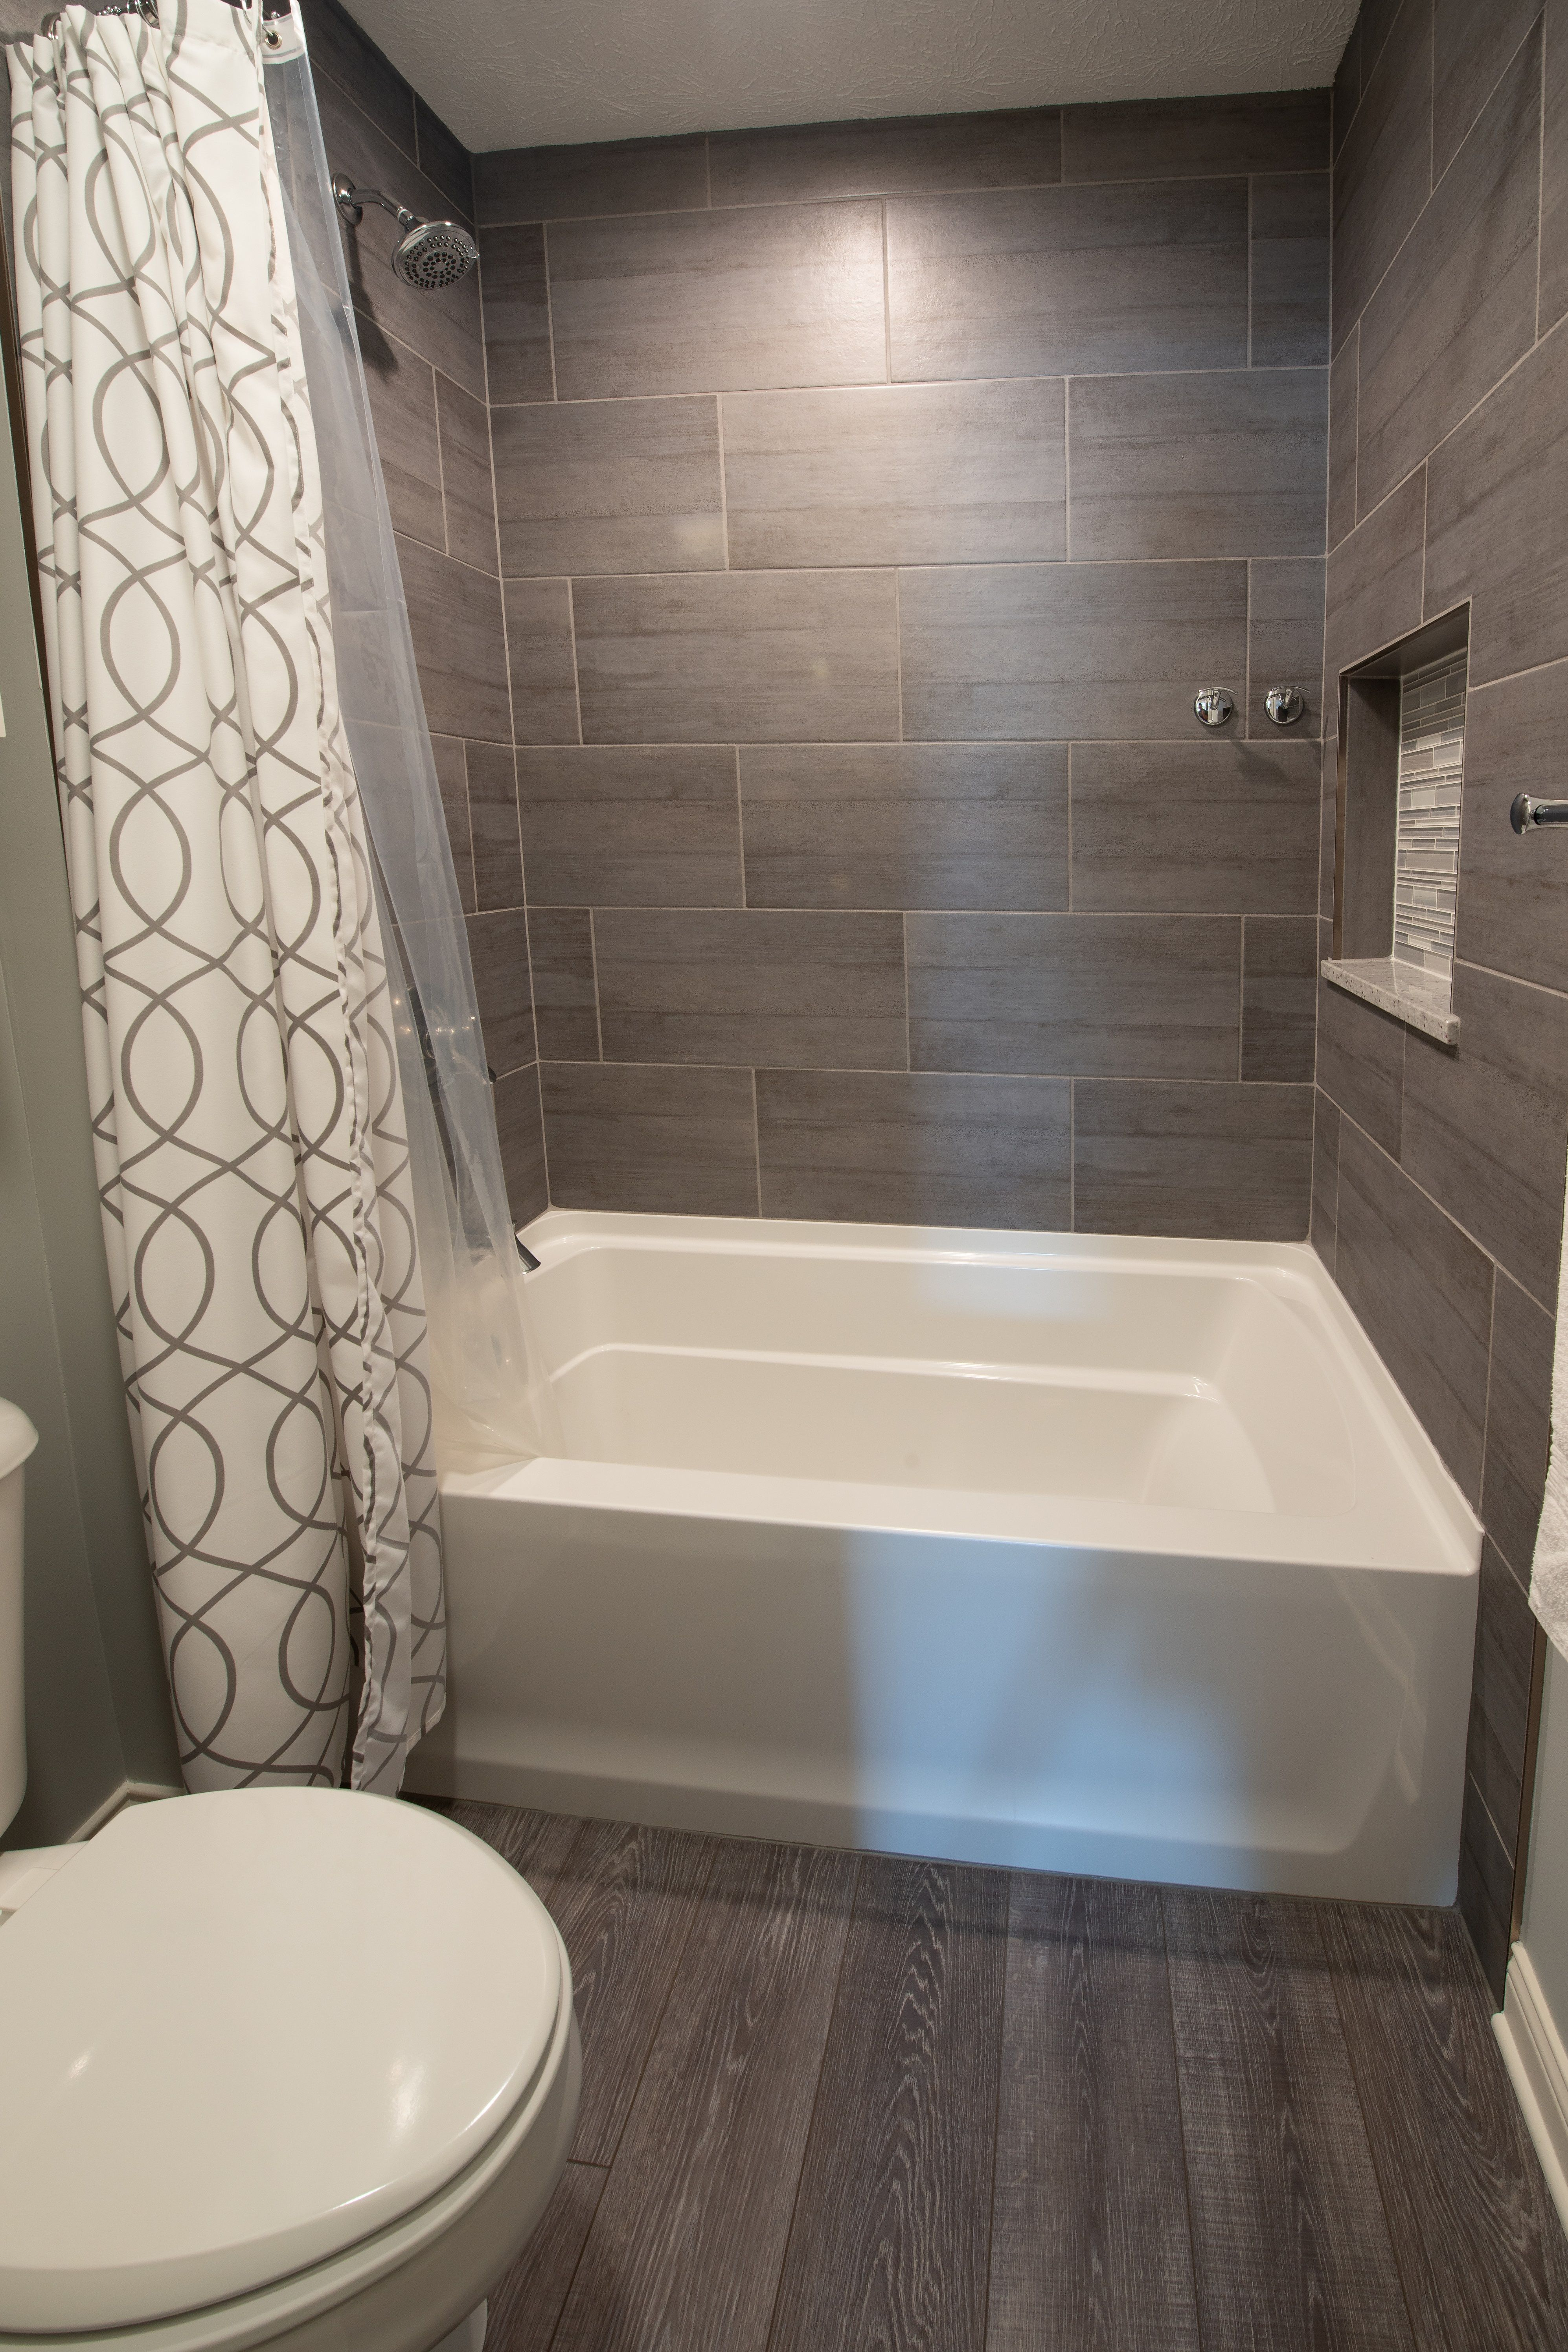 Pin By Bathrooms And More On Bathroom Ideas In 2020 Guest Bathroom Remodel Bathrooms Remodel Guest Bathroom Small